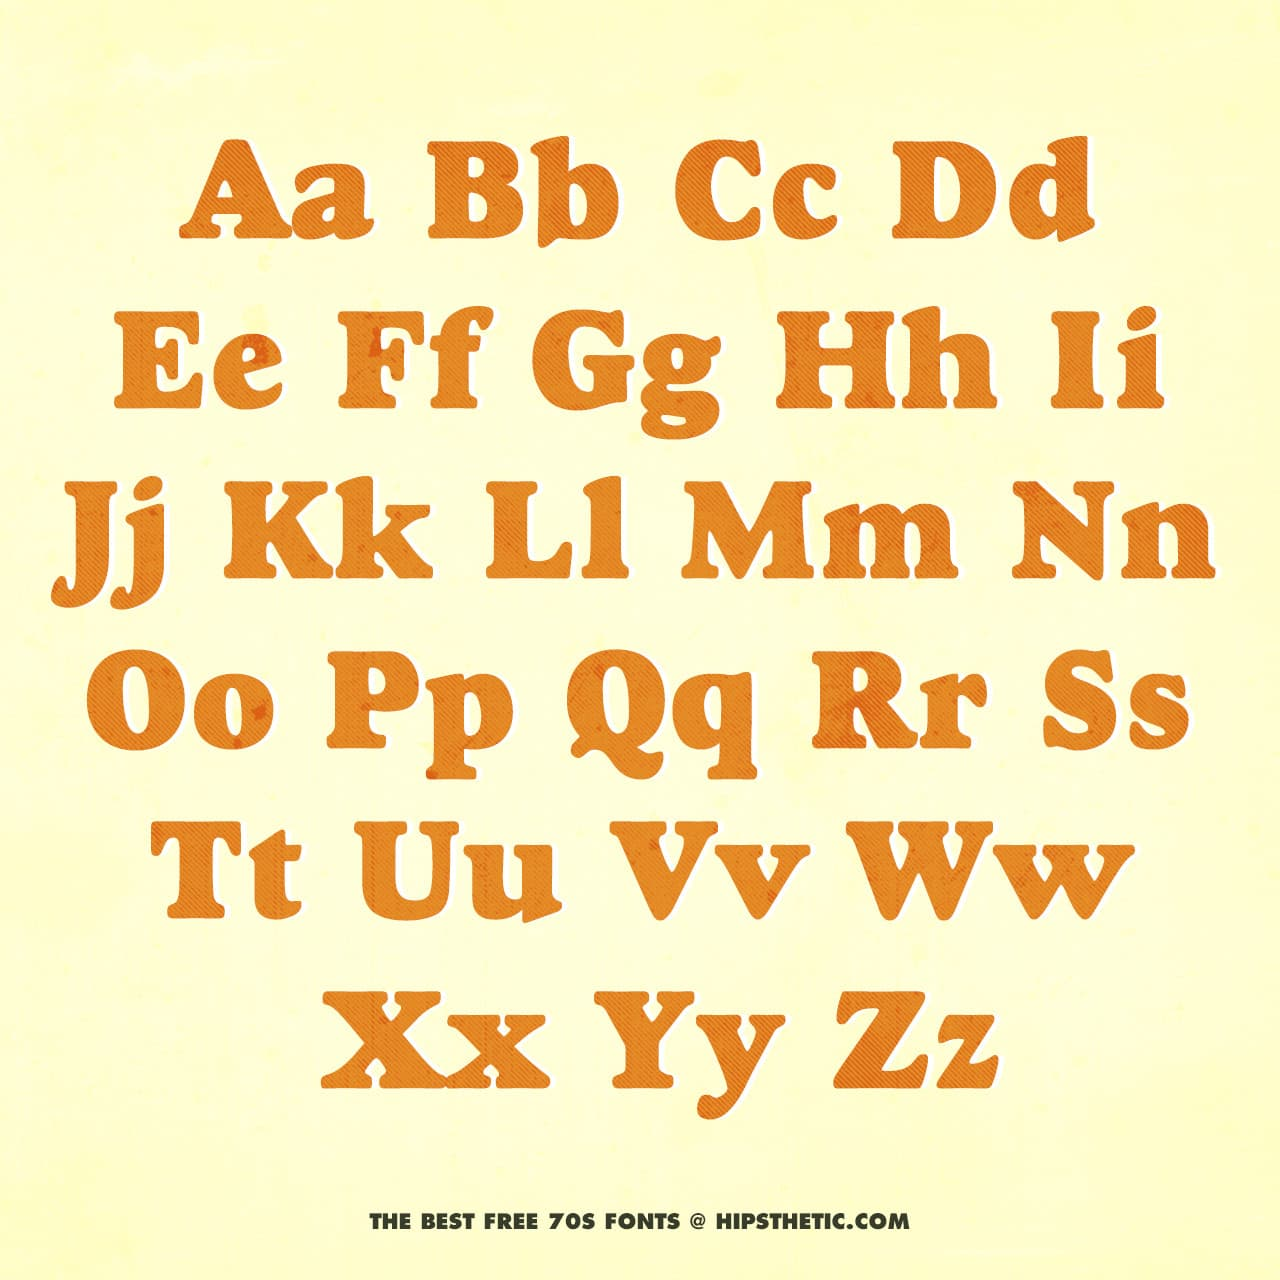 Goudy Heavyface - Free 1970s Font